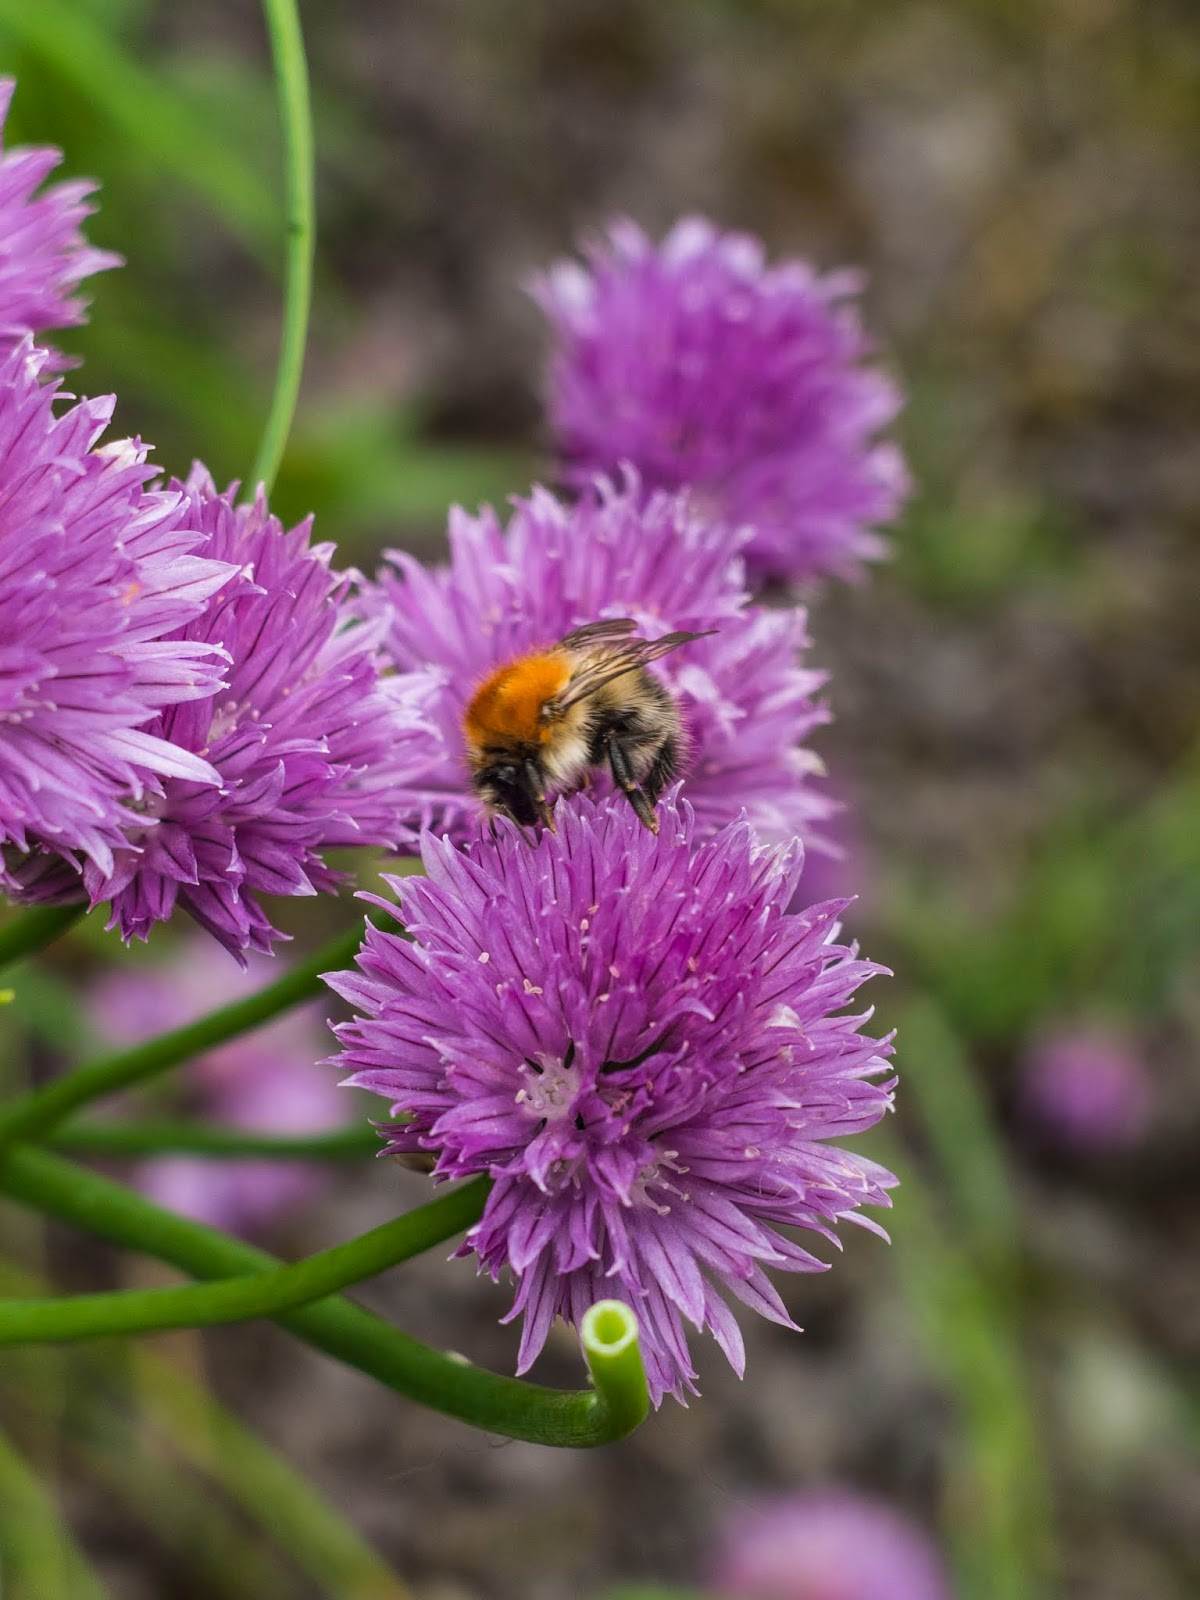 A bumble bee collecting pollen from purple chive flowers.